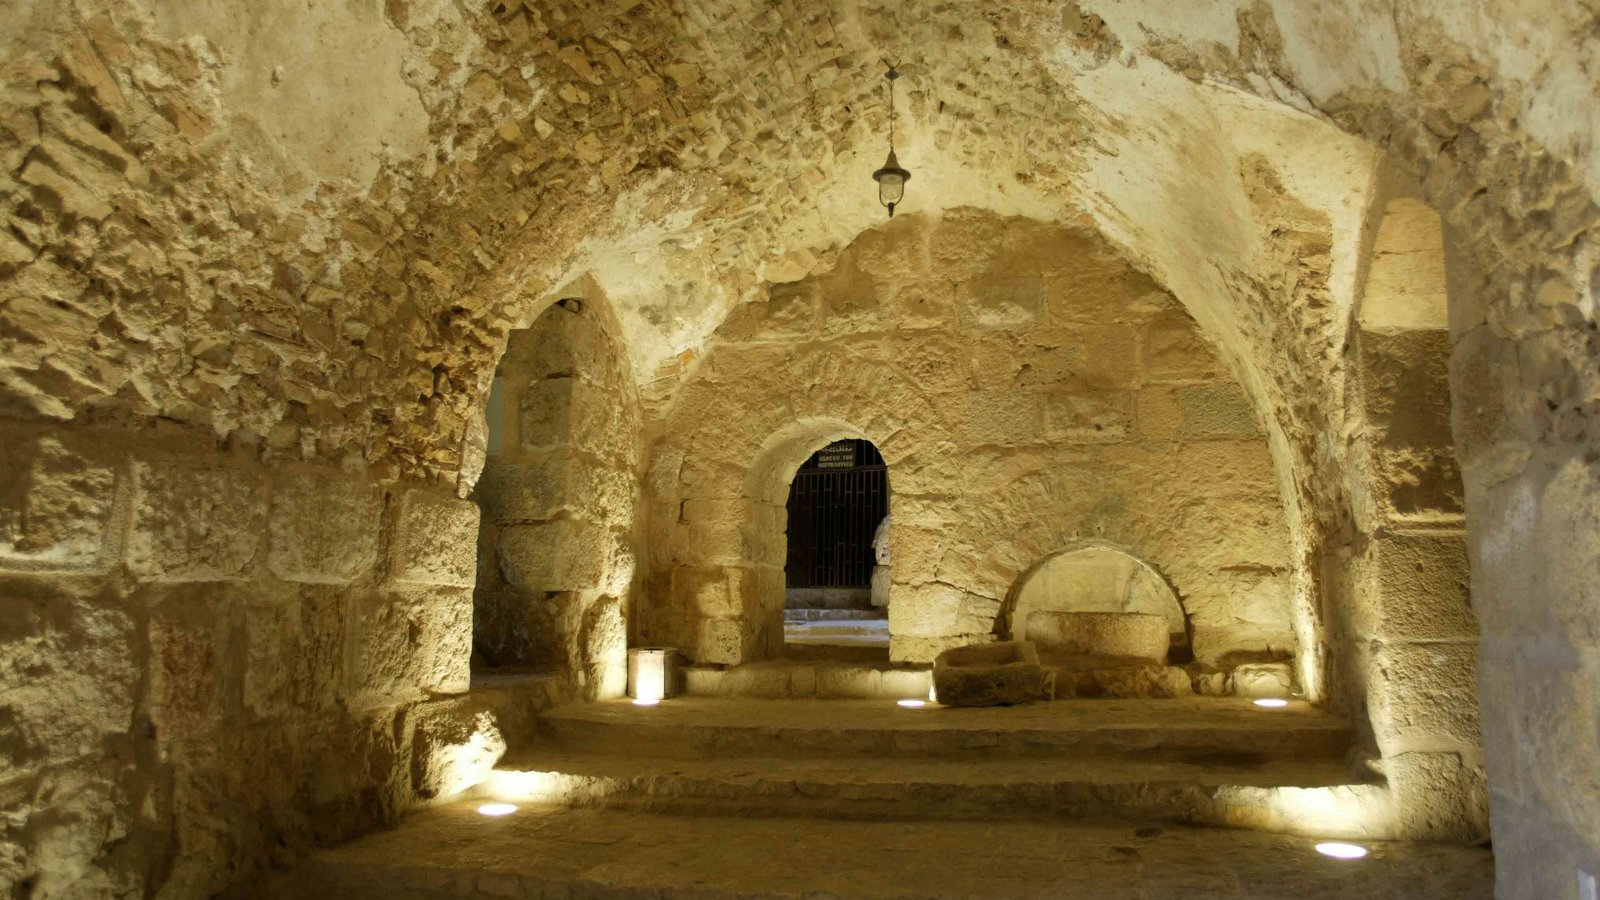 Ajloun Castle featuring heritage architecture and interior views